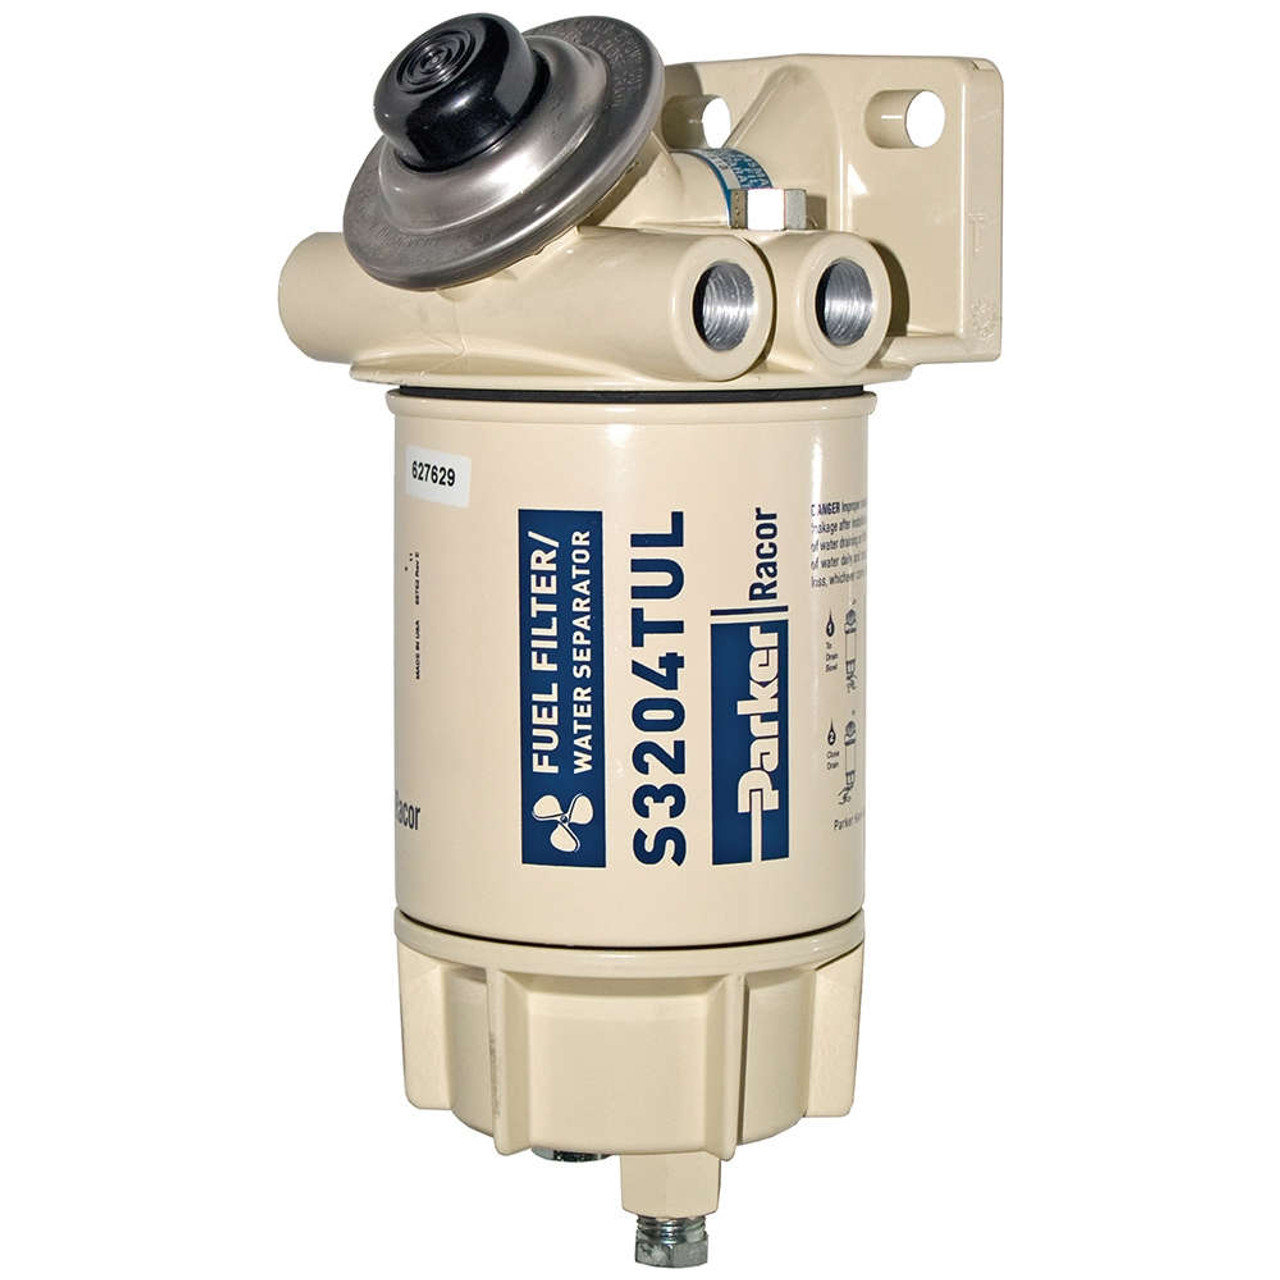 racor aquabloc marine 3 8 in 45 gph spin on diesel fuel filter Racor Gas Fuel Filter Installation racor aquabloc marine 3 8 in 45 gph spin on diesel fuel filter water separator assembly 6 qty john m ellsworth co inc